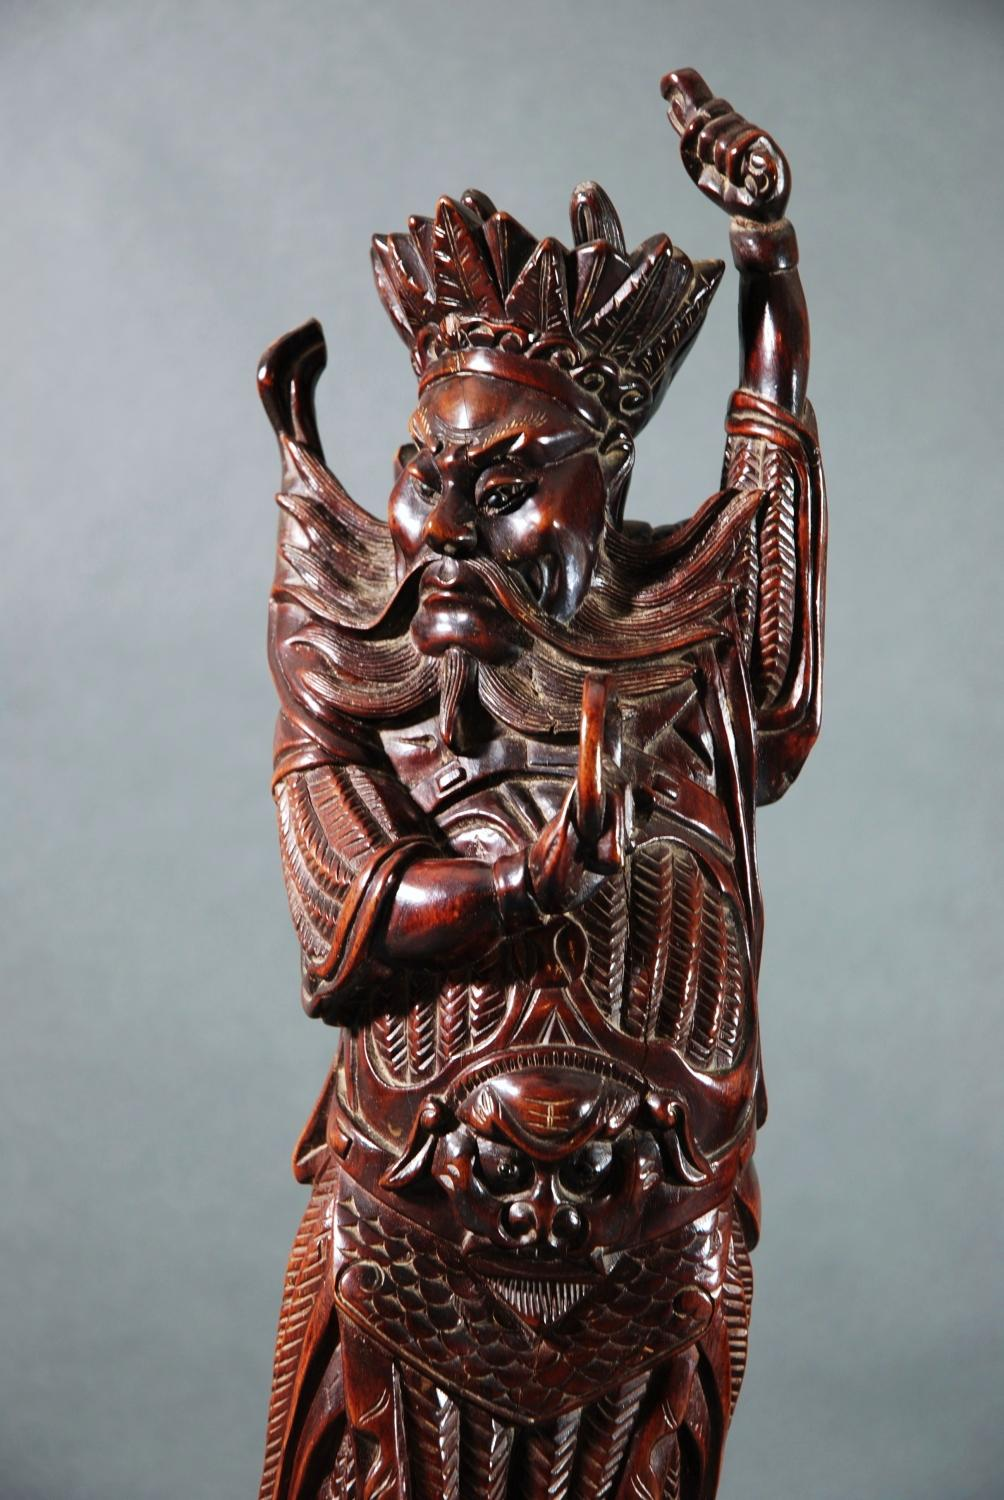 Chinese carving of mortal with headdress